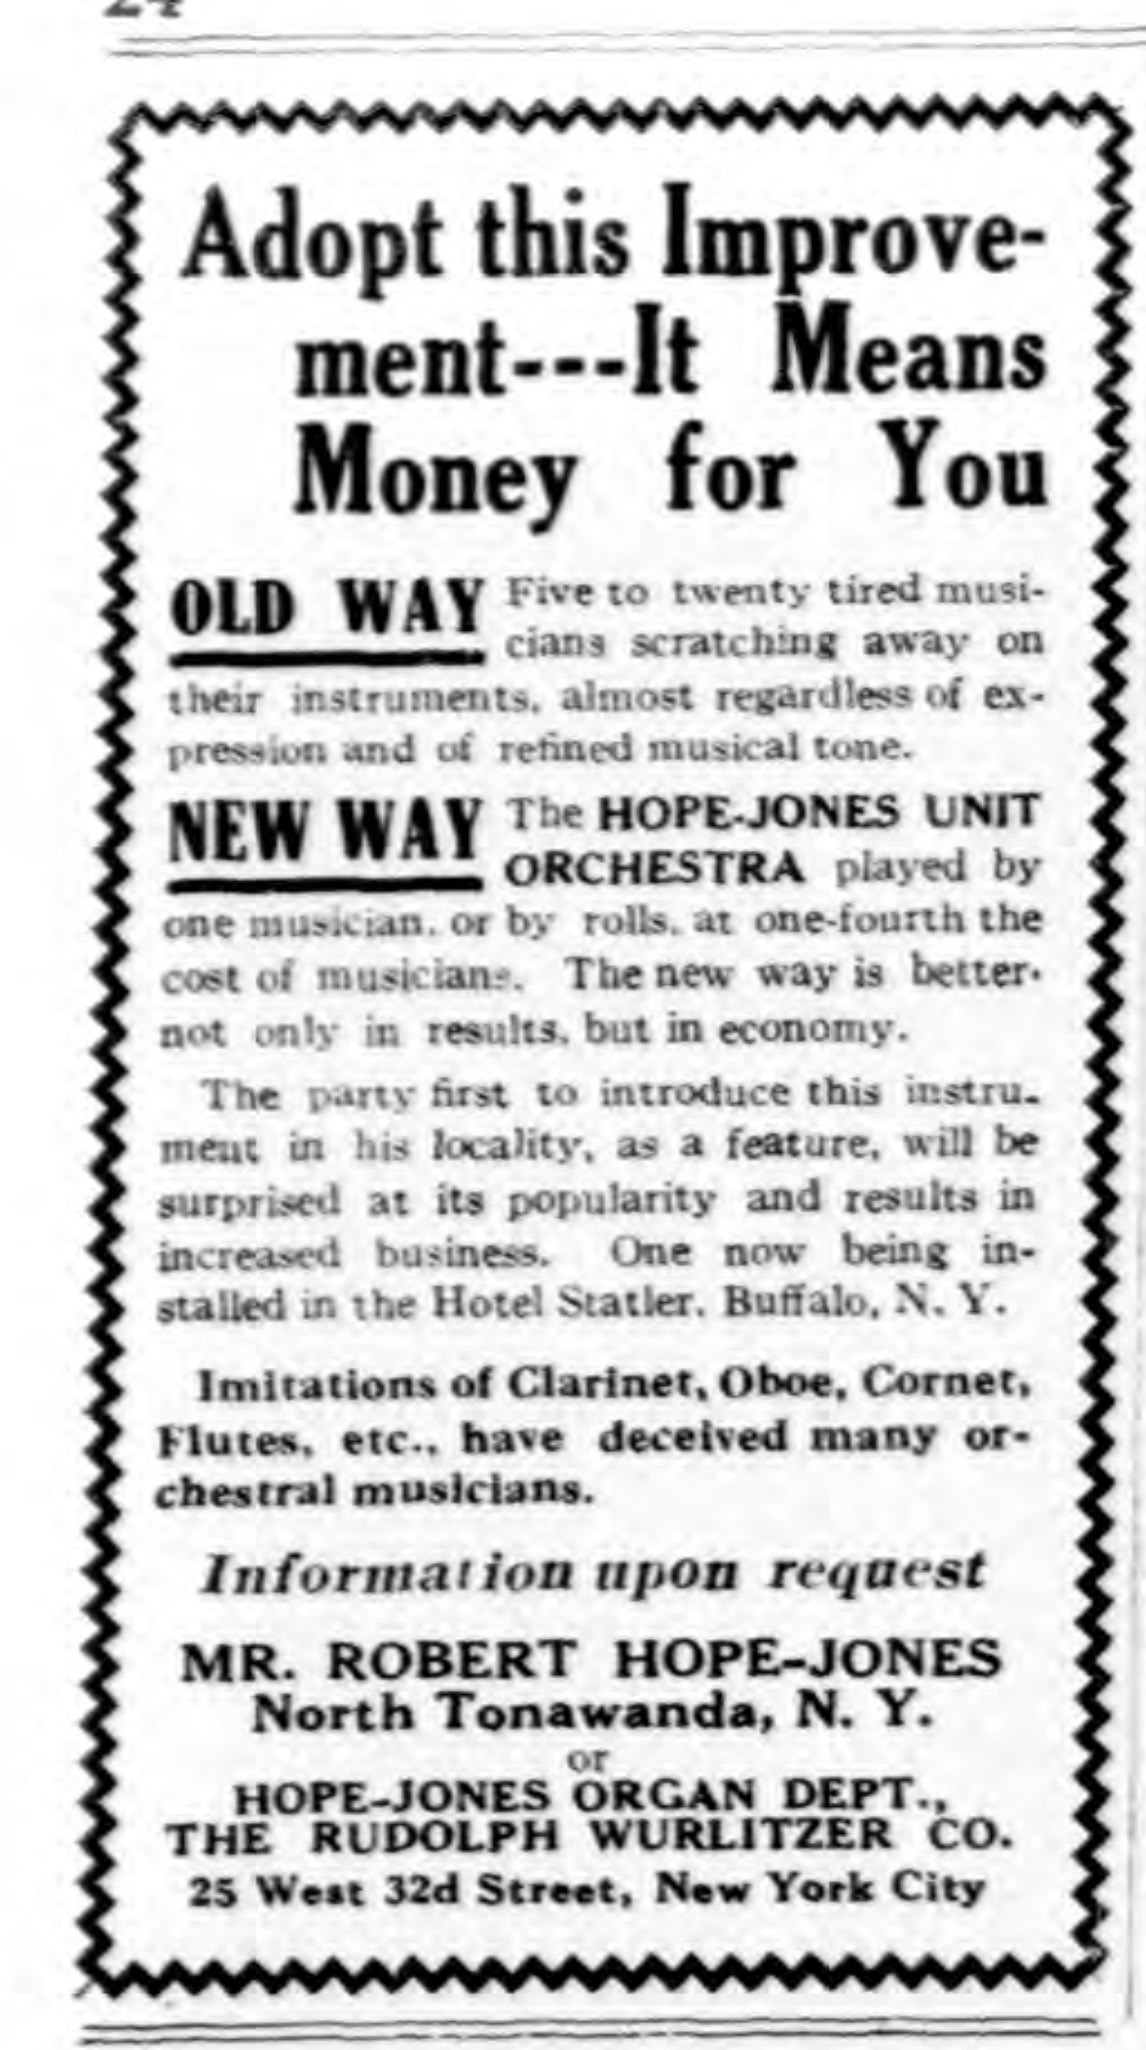 Unit Orchestra, Hope Jones Organ Dept, Wurlitzer, ad (NY Dramatic Mirror, 1910-12-14).jpg